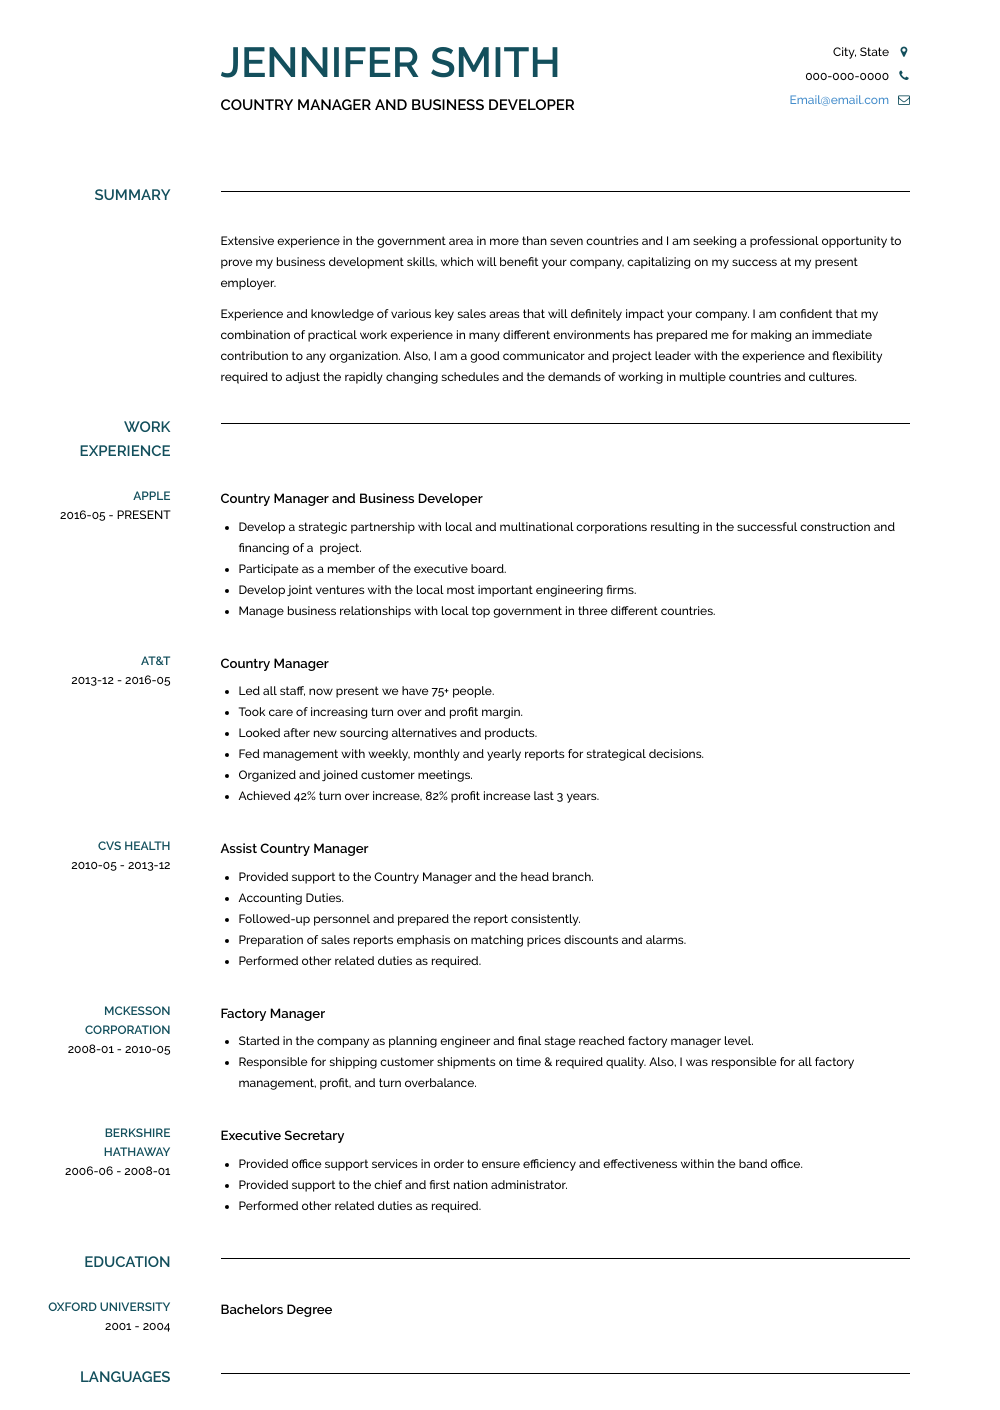 Country Manager And Business Developer Resume Sample and Template